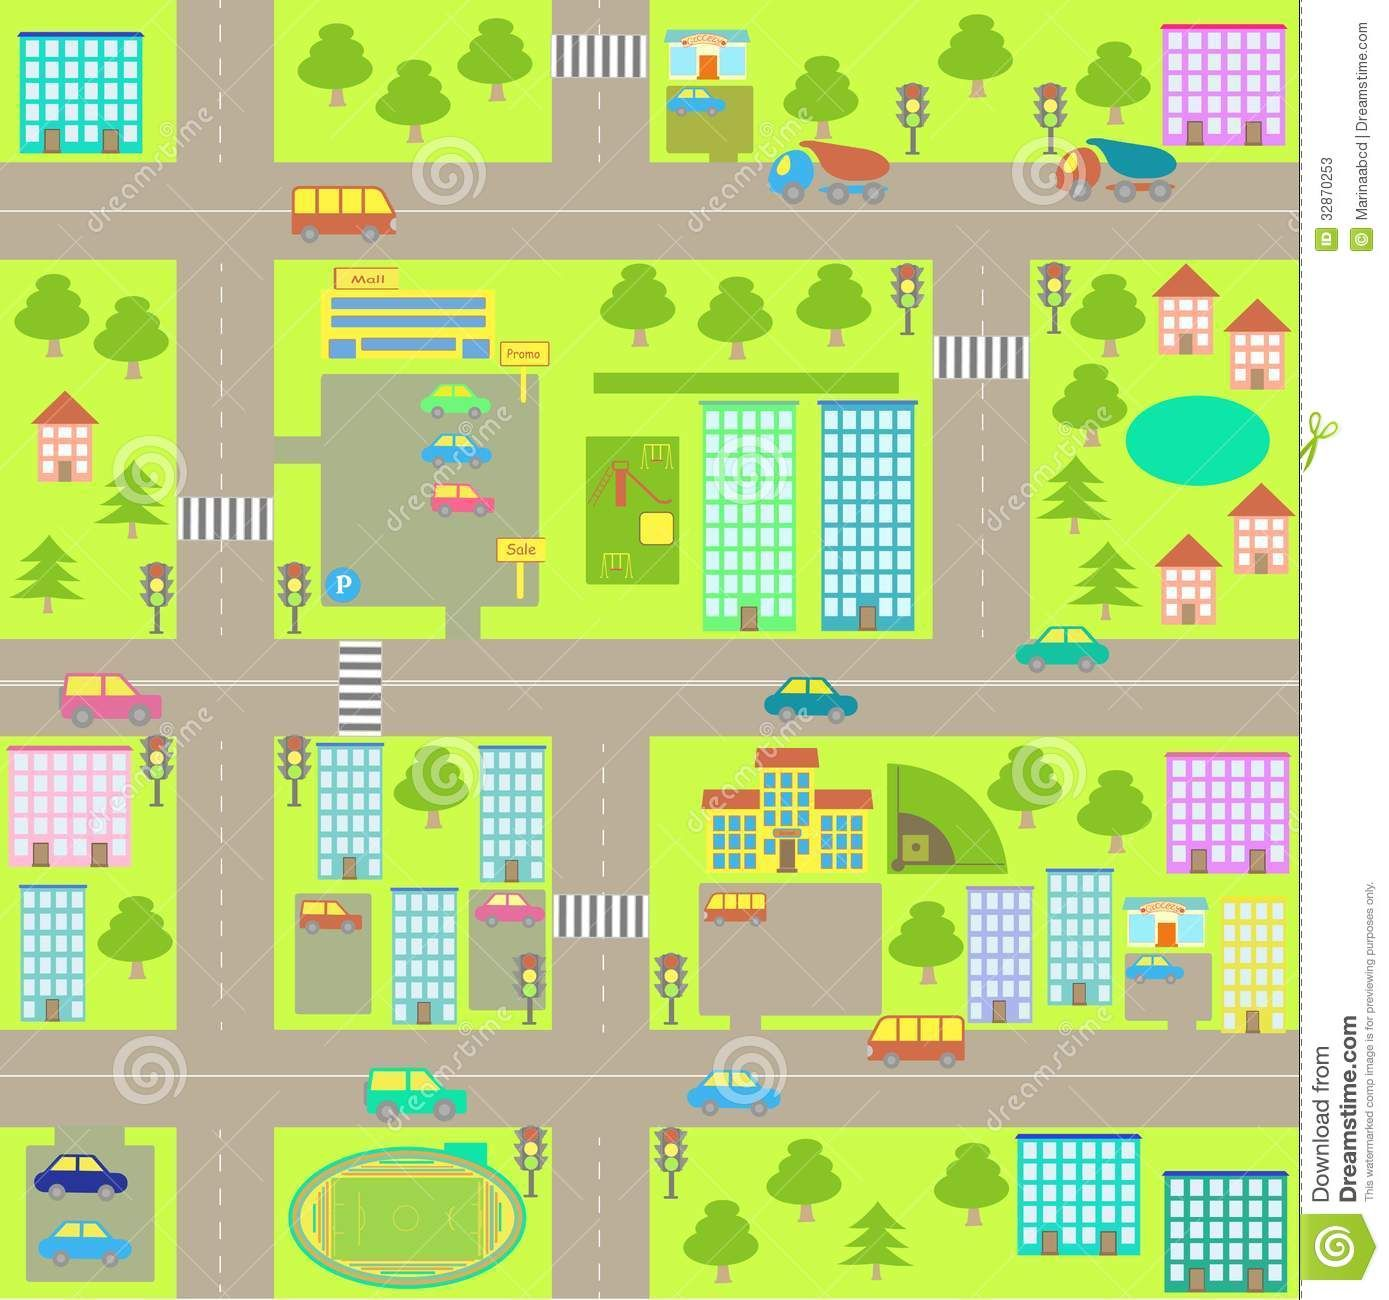 Cartoon Seamless City Map